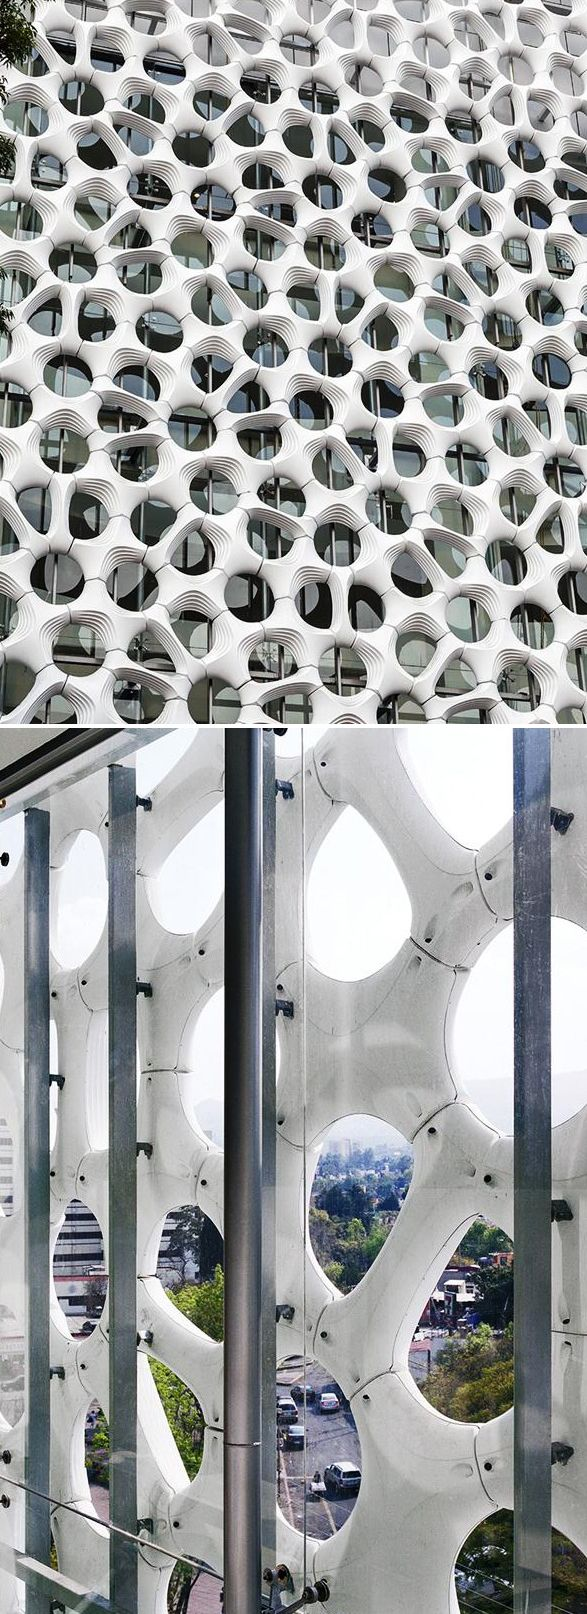 This sculptural facade also doubles as an air-cleaning cladding. The tiles are produced by Elegant Embellishments (called the Prosolve 370e). They are lightweight, thermoformed plastic tiles coated in powdered, photocatalytic titanium dioxide (TiO2) which scrubs pollution from the air. #facade #material #pollution